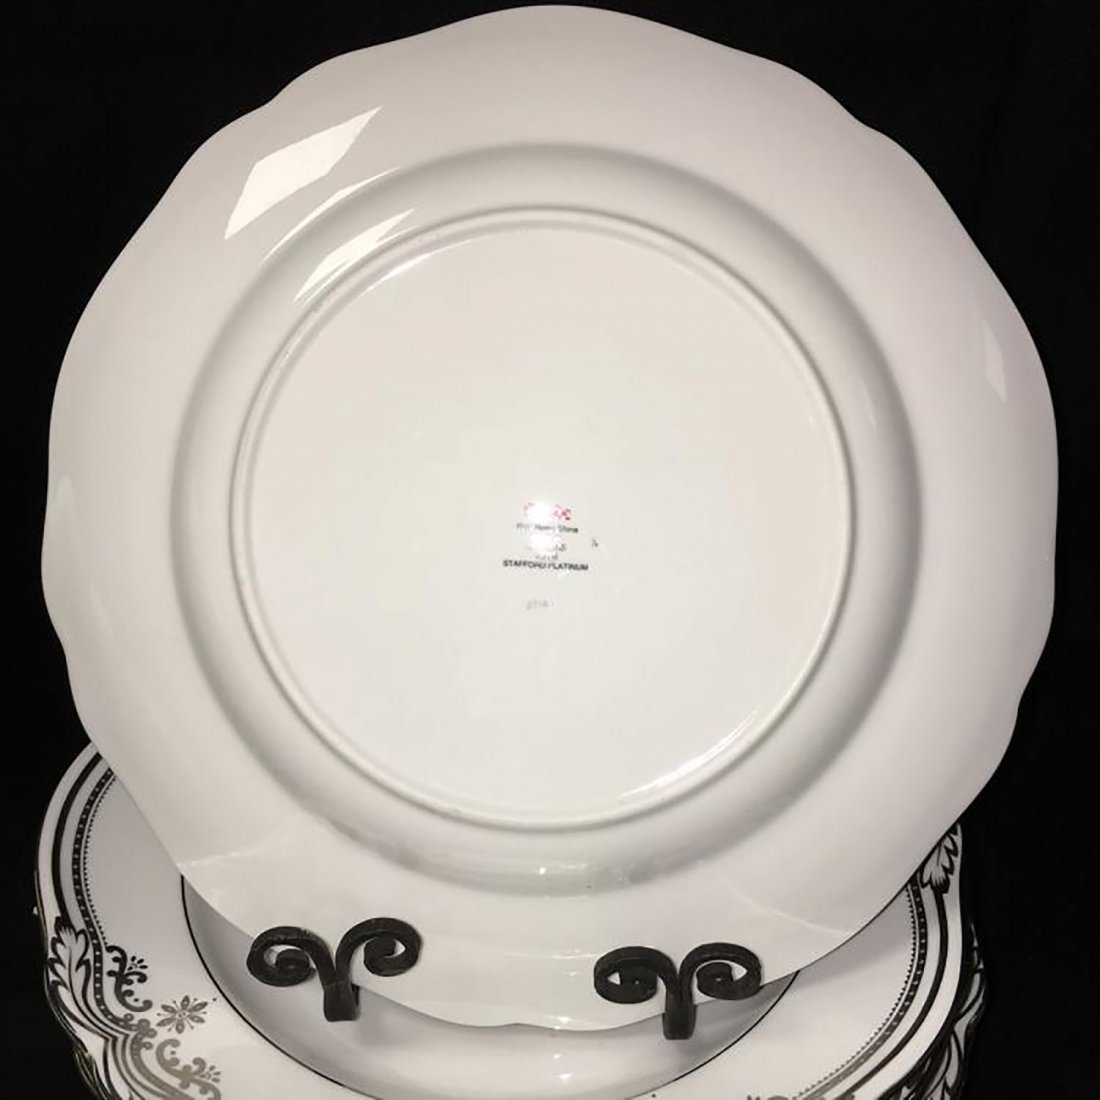 Spode Bone China Dinnerware Stafford Platinum Pattern - 5